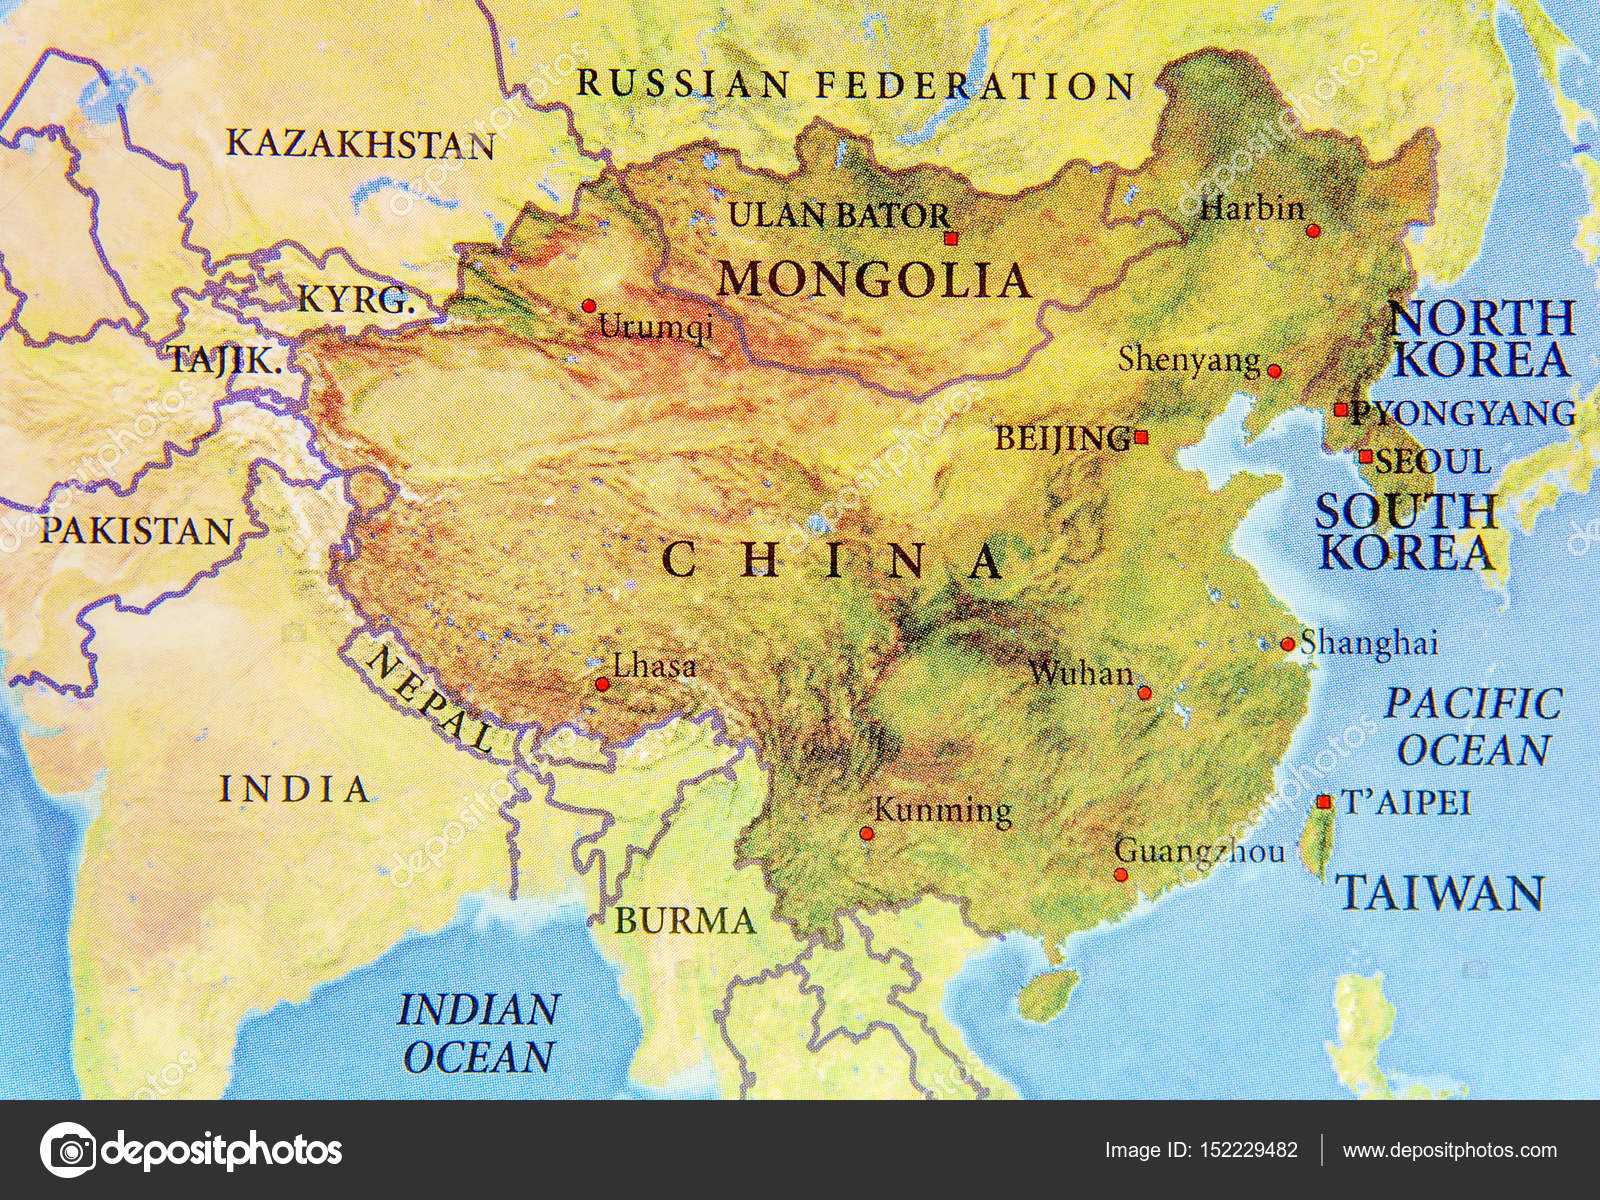 Geographic map of chine mongolia north korea and south korea w geographic map of chine mongolia north korea and south korea w stock photo gumiabroncs Choice Image